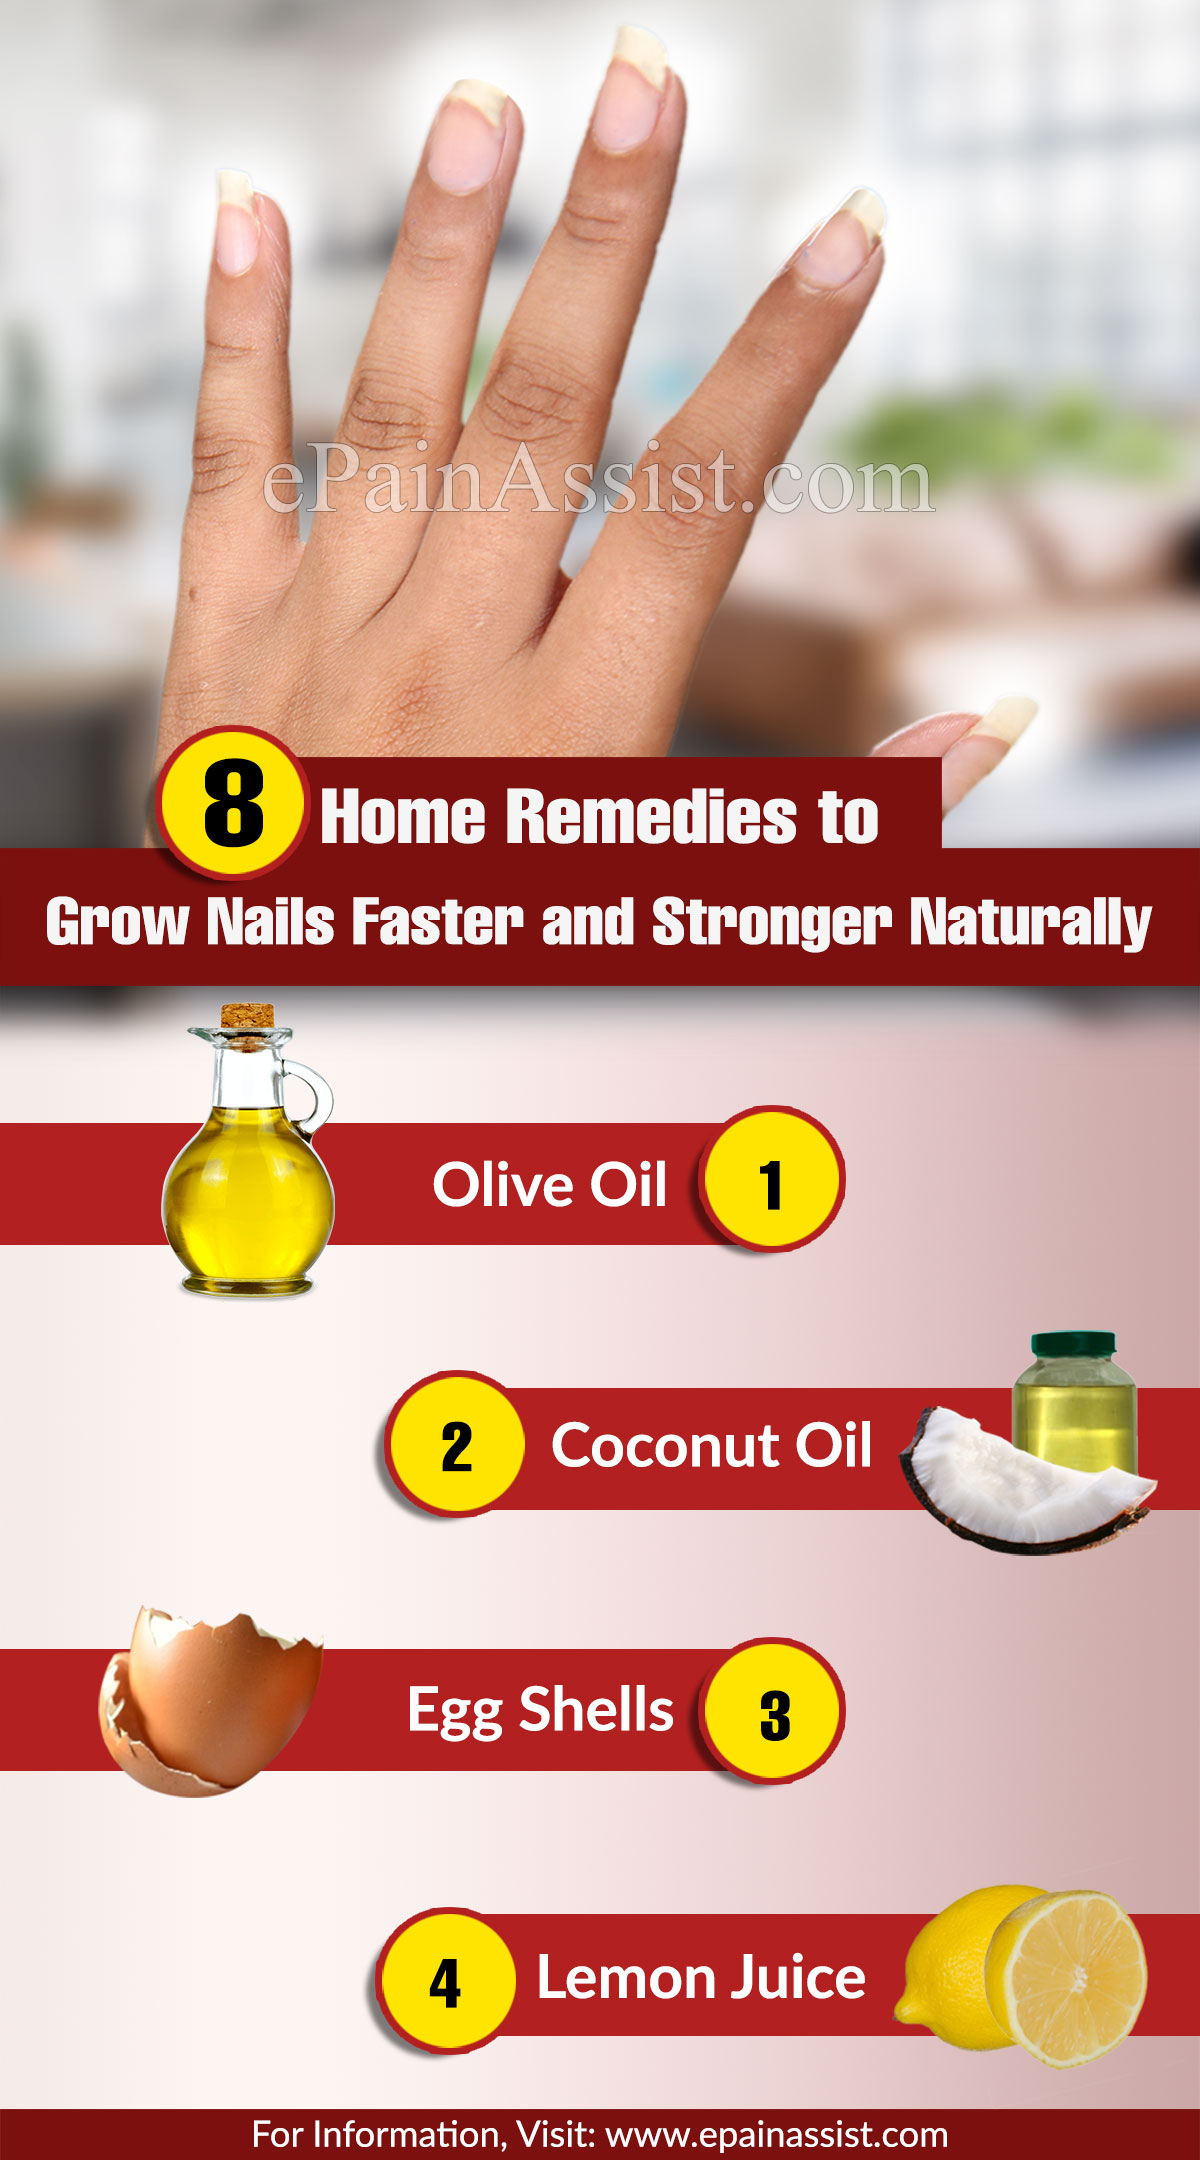 Home Remedies to Grow Nails Faster and Stronger Naturally